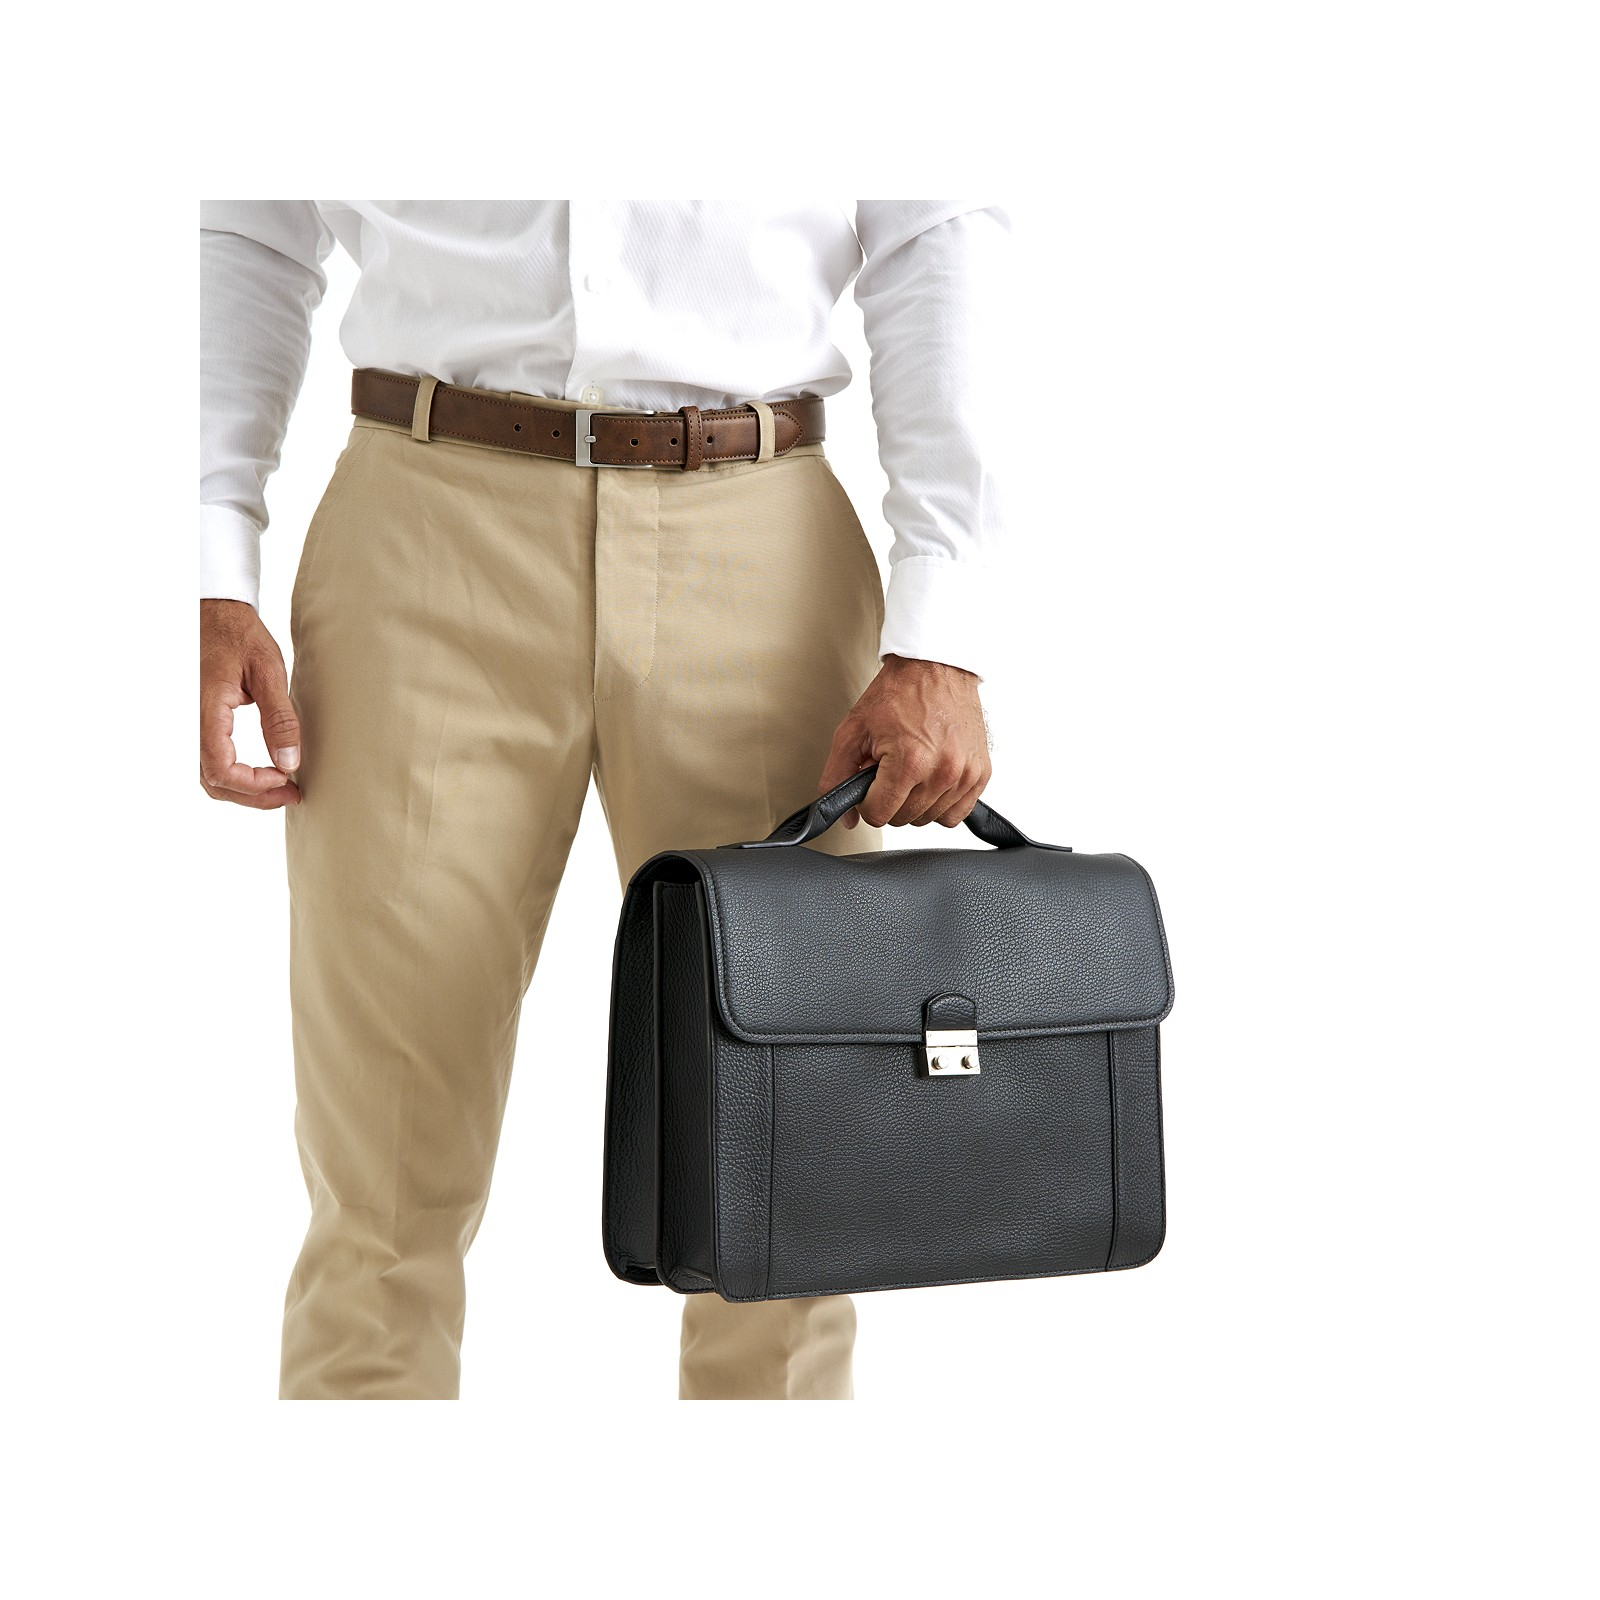 b5d05a03721c Lawyer briefcase undefined - undefined Lawyer briefcase undefined -  undefined